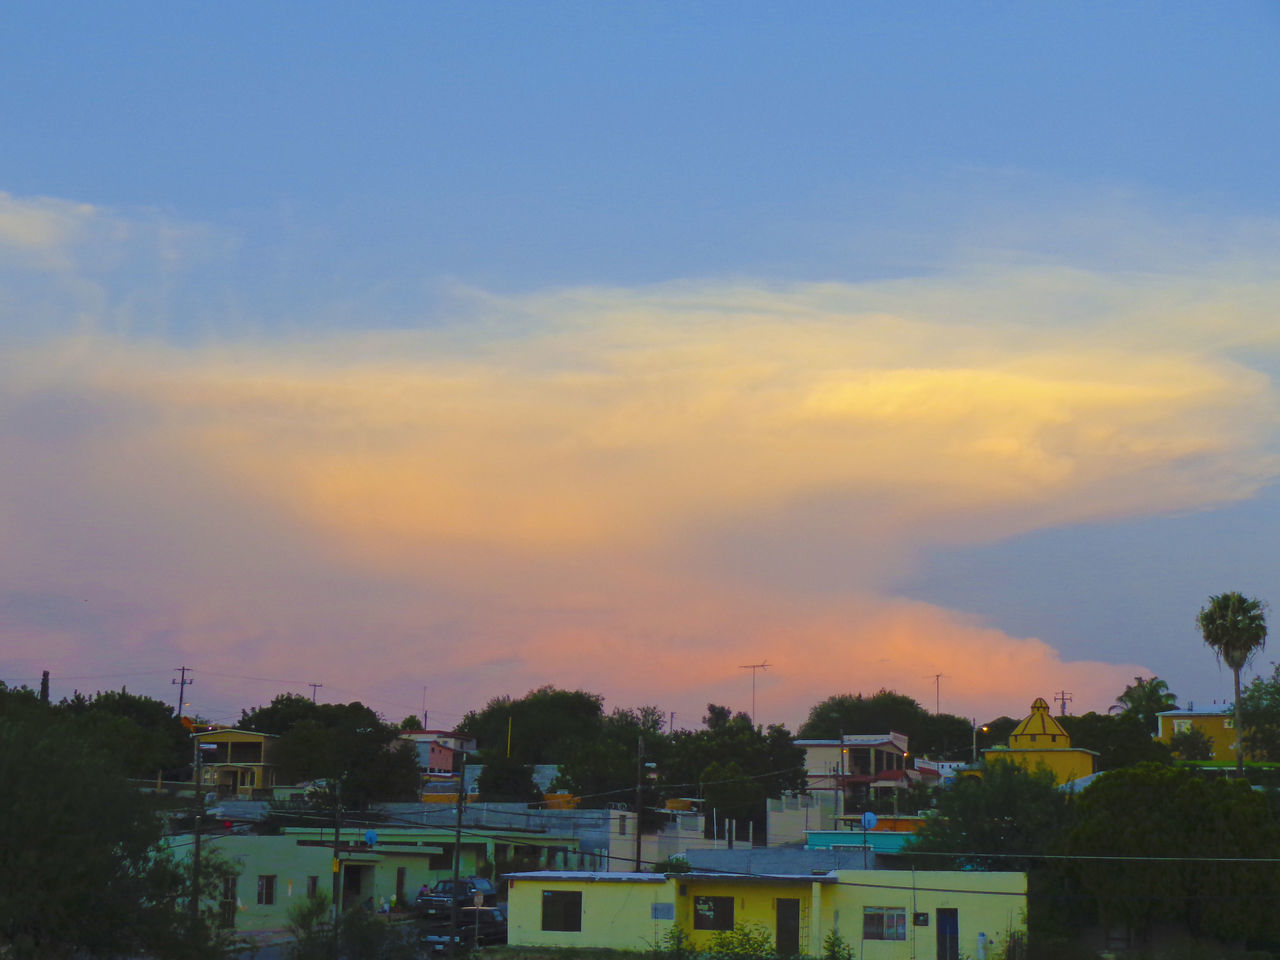 Cielito Lindo Mexicano🇲🇽 Architecture Blue Building Exterior Built Structure City City Life Cloud Cloud - Sky Development Exterior High Angle View House No People Outdoors Residential Building Residential District Residential Structure Romantic Sky Sky Sunset Town Tree